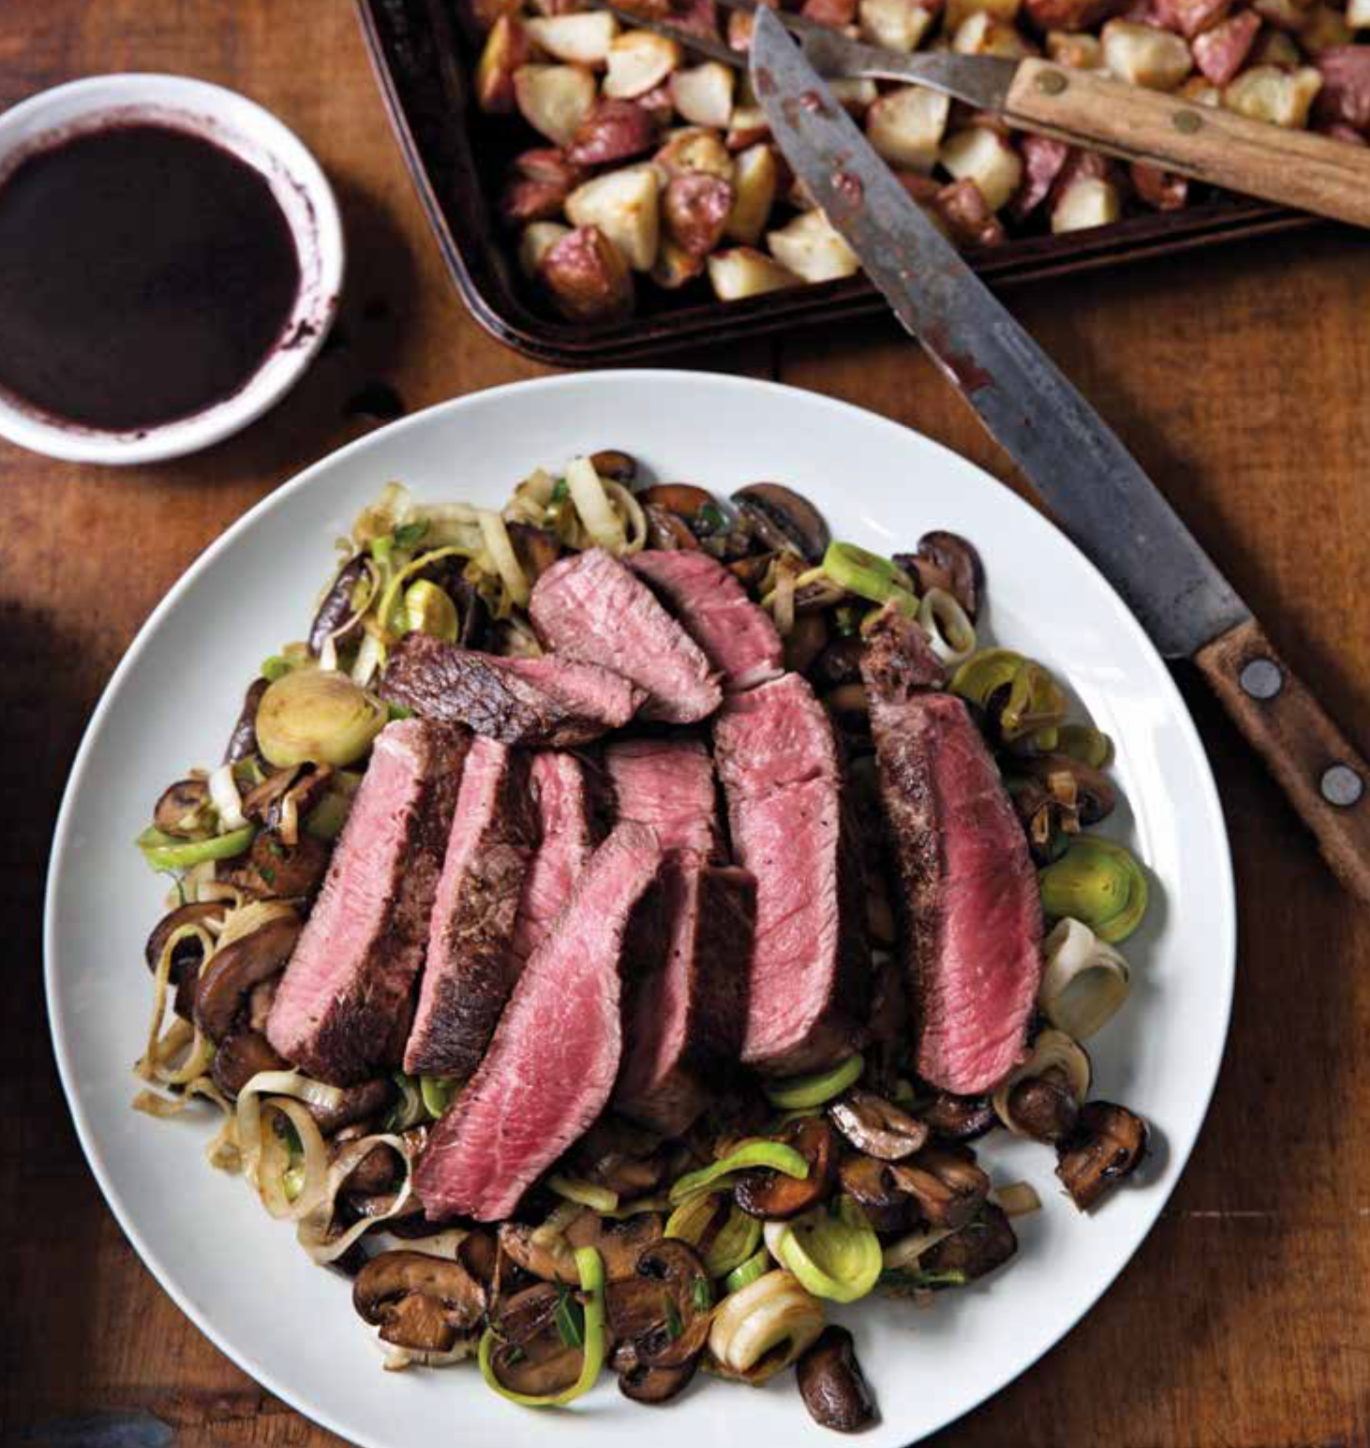 Steak slices on sauteed Brussels sprouts and sliced mushrooms.